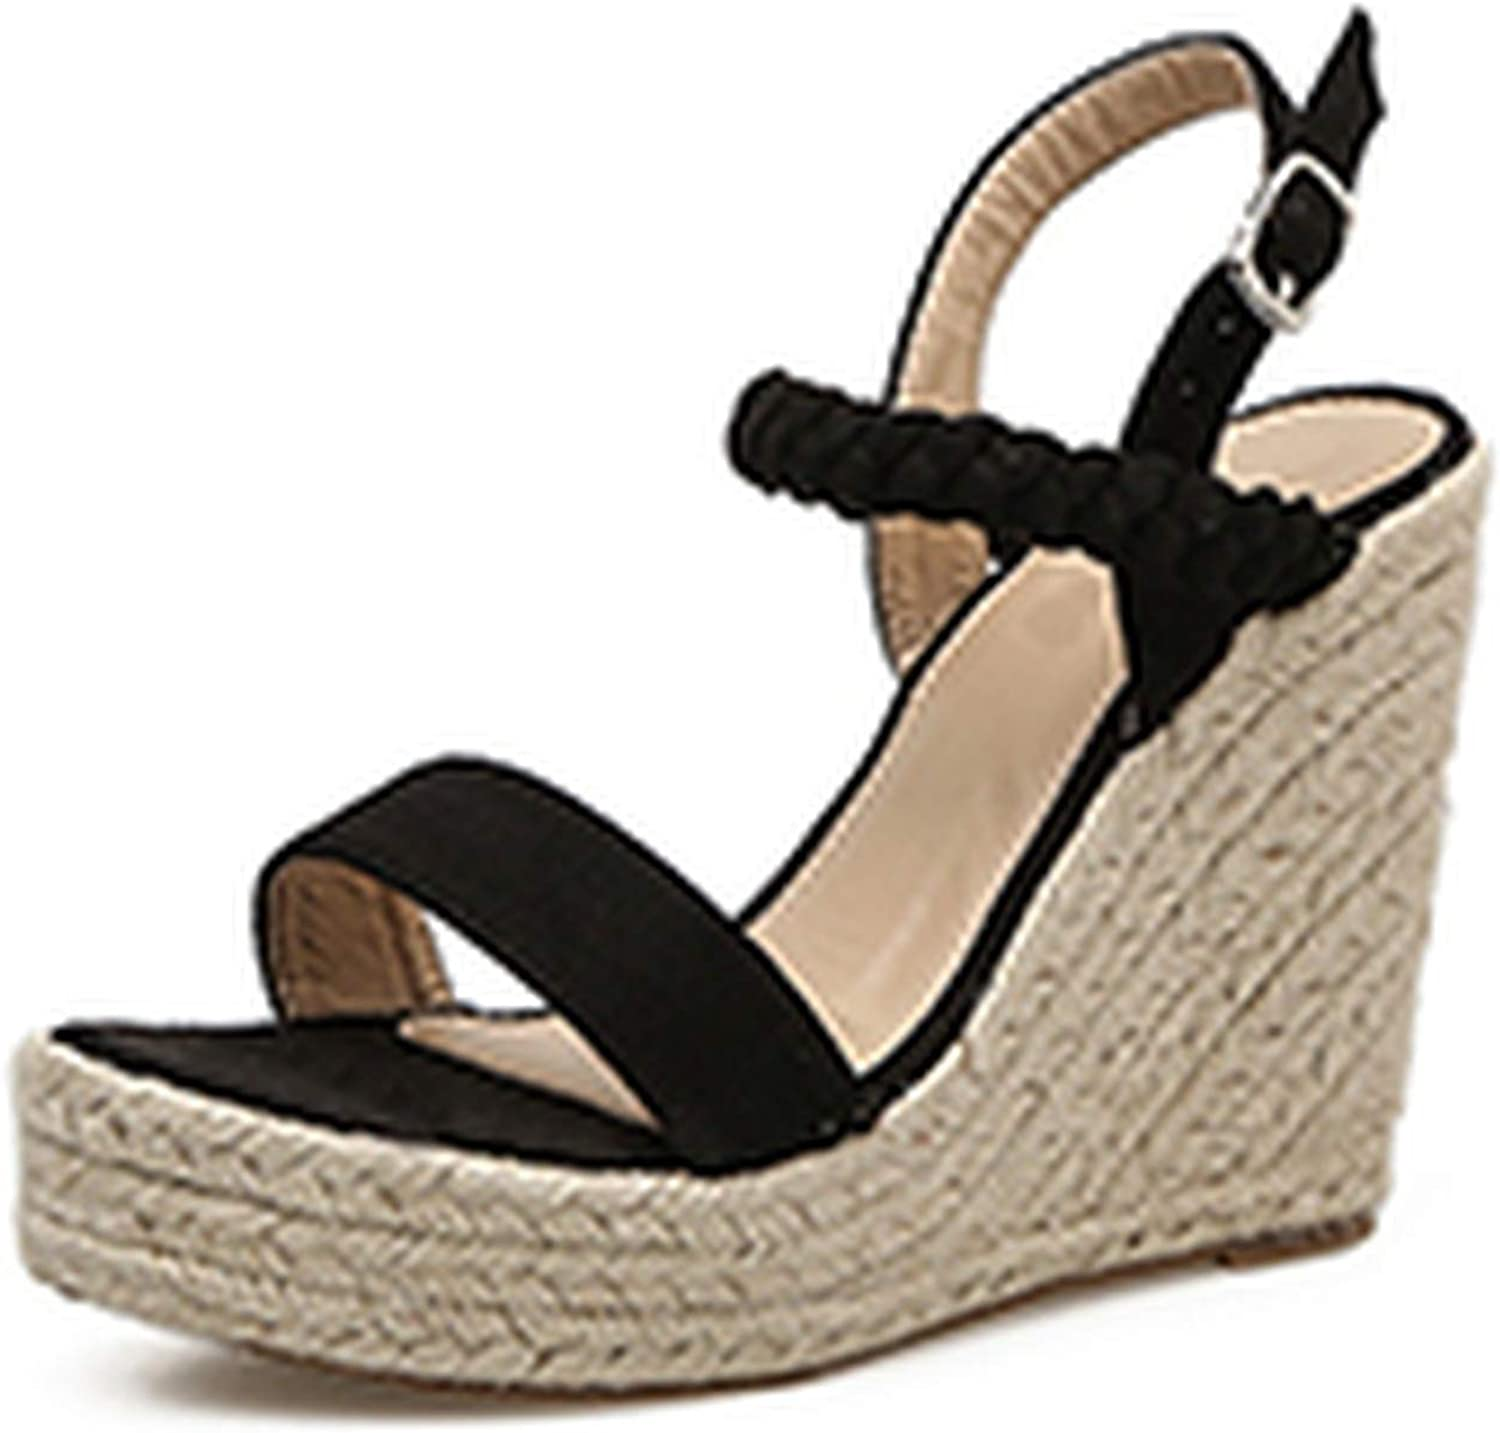 Ches Classics Sandals for Women Flock Wedges Buckle Strap Wedges High Heel Gladiator Casual Ladies Sandals Size 35-40